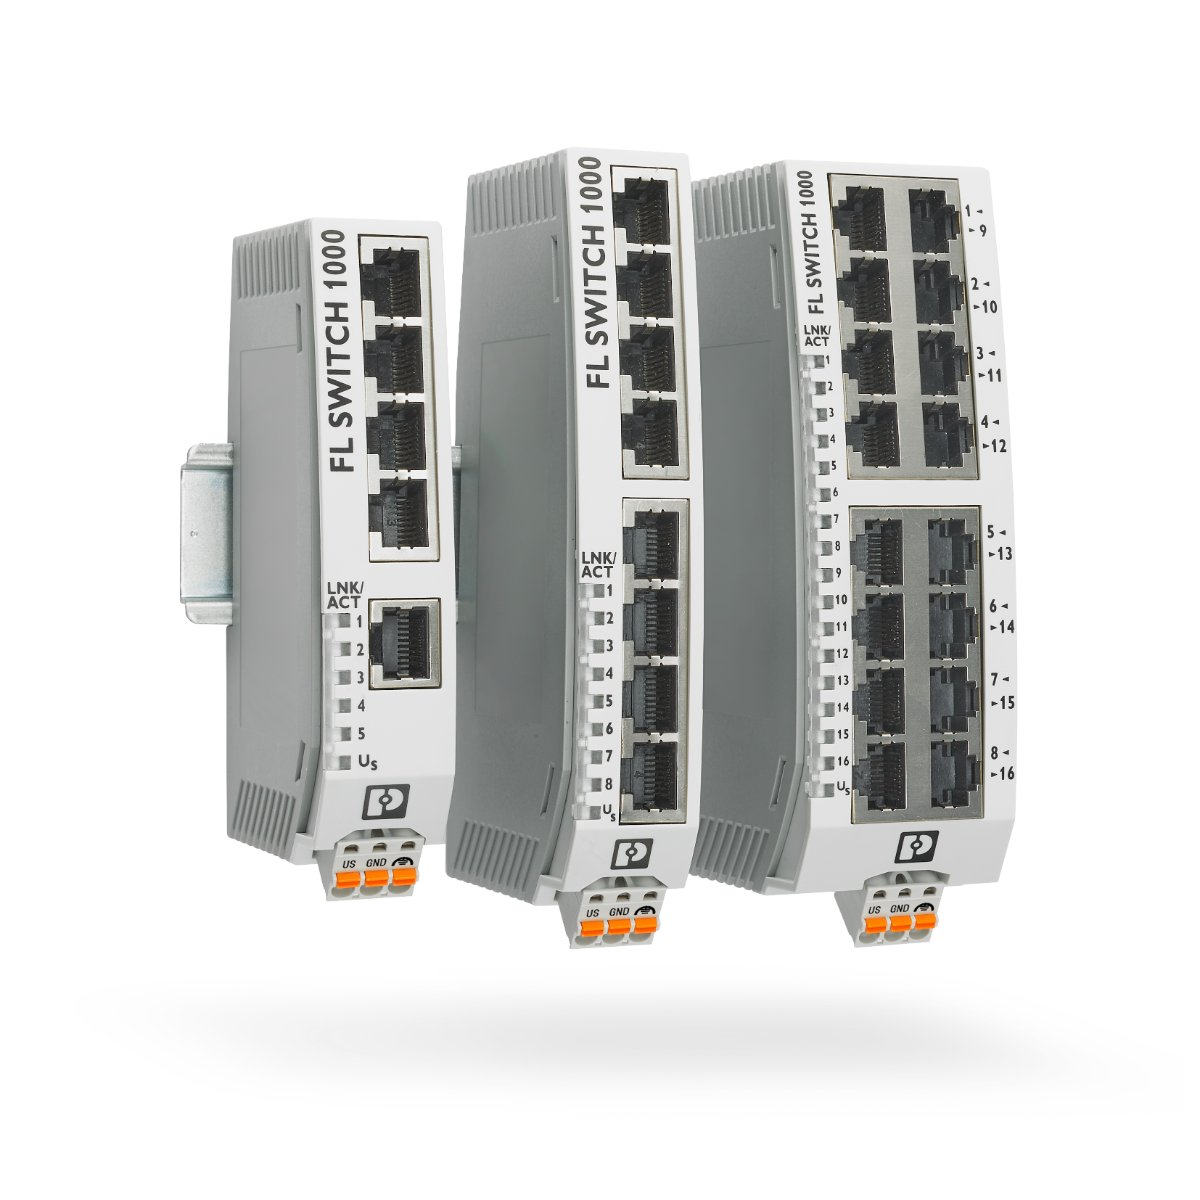 Laissez-vous surprendre par nos nouveaux Switches non-manageables au design compact couplé d'une installation rapide et flexible ! https://t.co/WHqZuUm0n4 https://t.co/UPGZmVH7U6